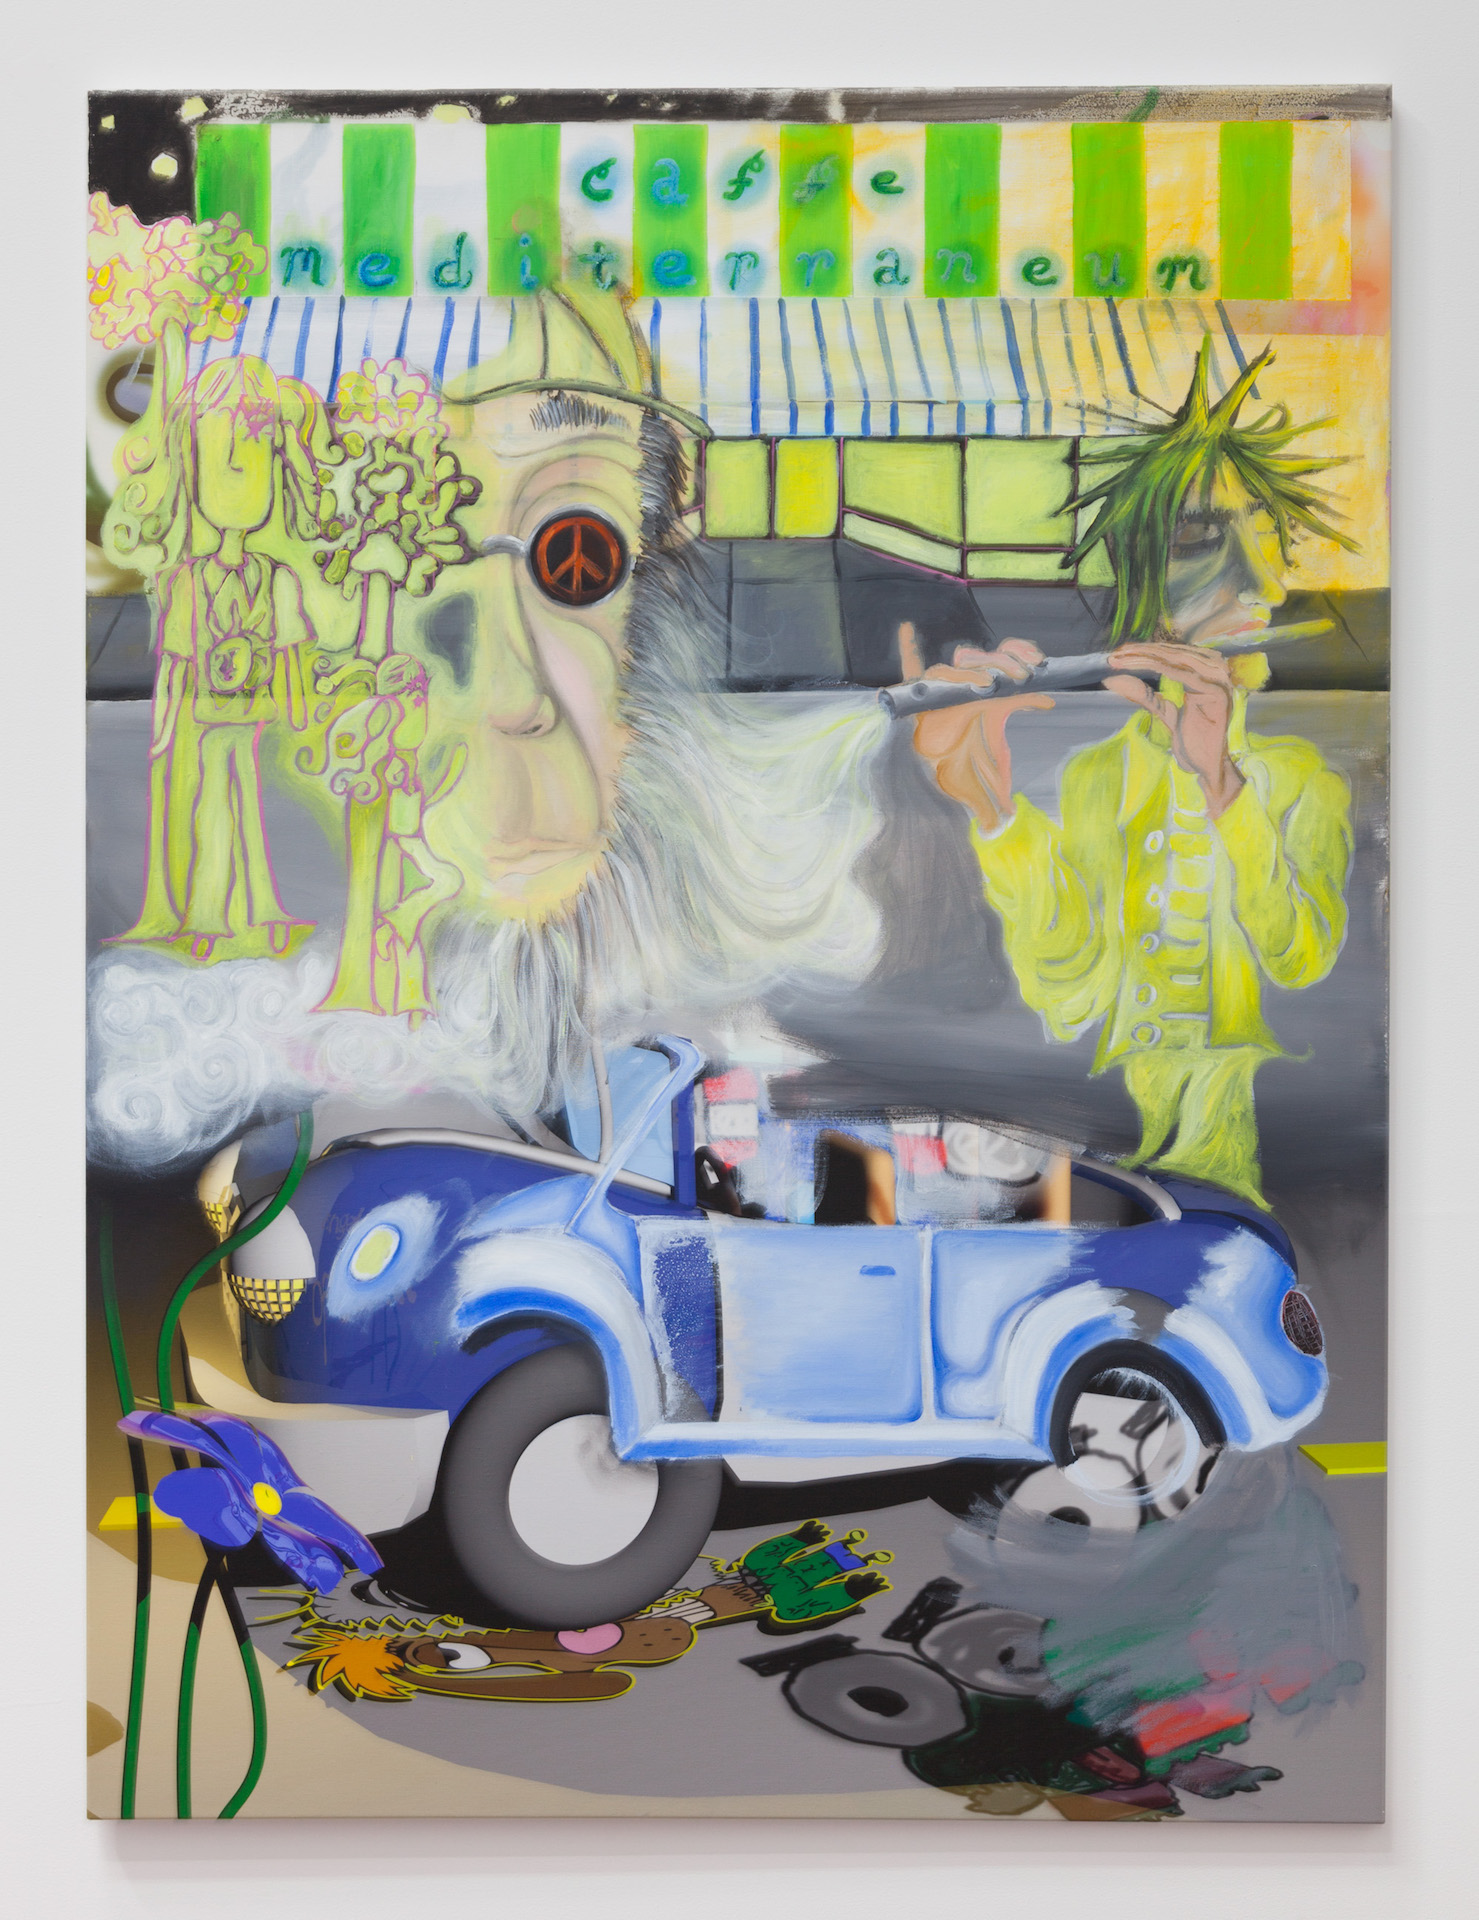 Rafael Delacruz,   17 r*i*p cafe med - mr. patches says cafe*mediterraneum can now funk in a greasy peace , 2017, inkjet print and acrylic on canvas, 48 × 36 in